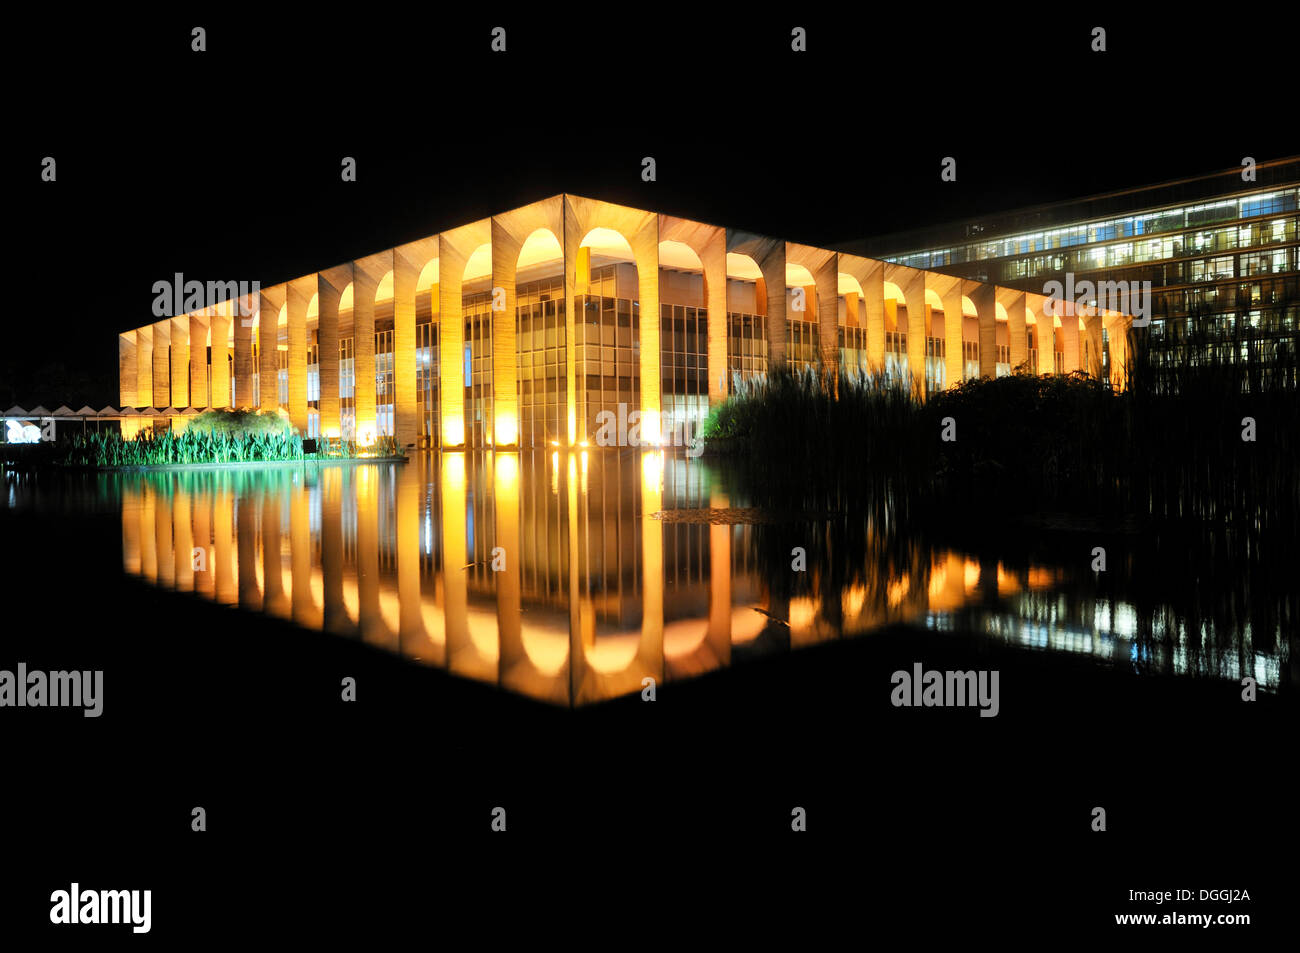 Ministry of Foreign Affairs, Palacio Itamaraty, at night, architect Oscar Niemeyer, Brasilia, Distrito Federal - Stock Image